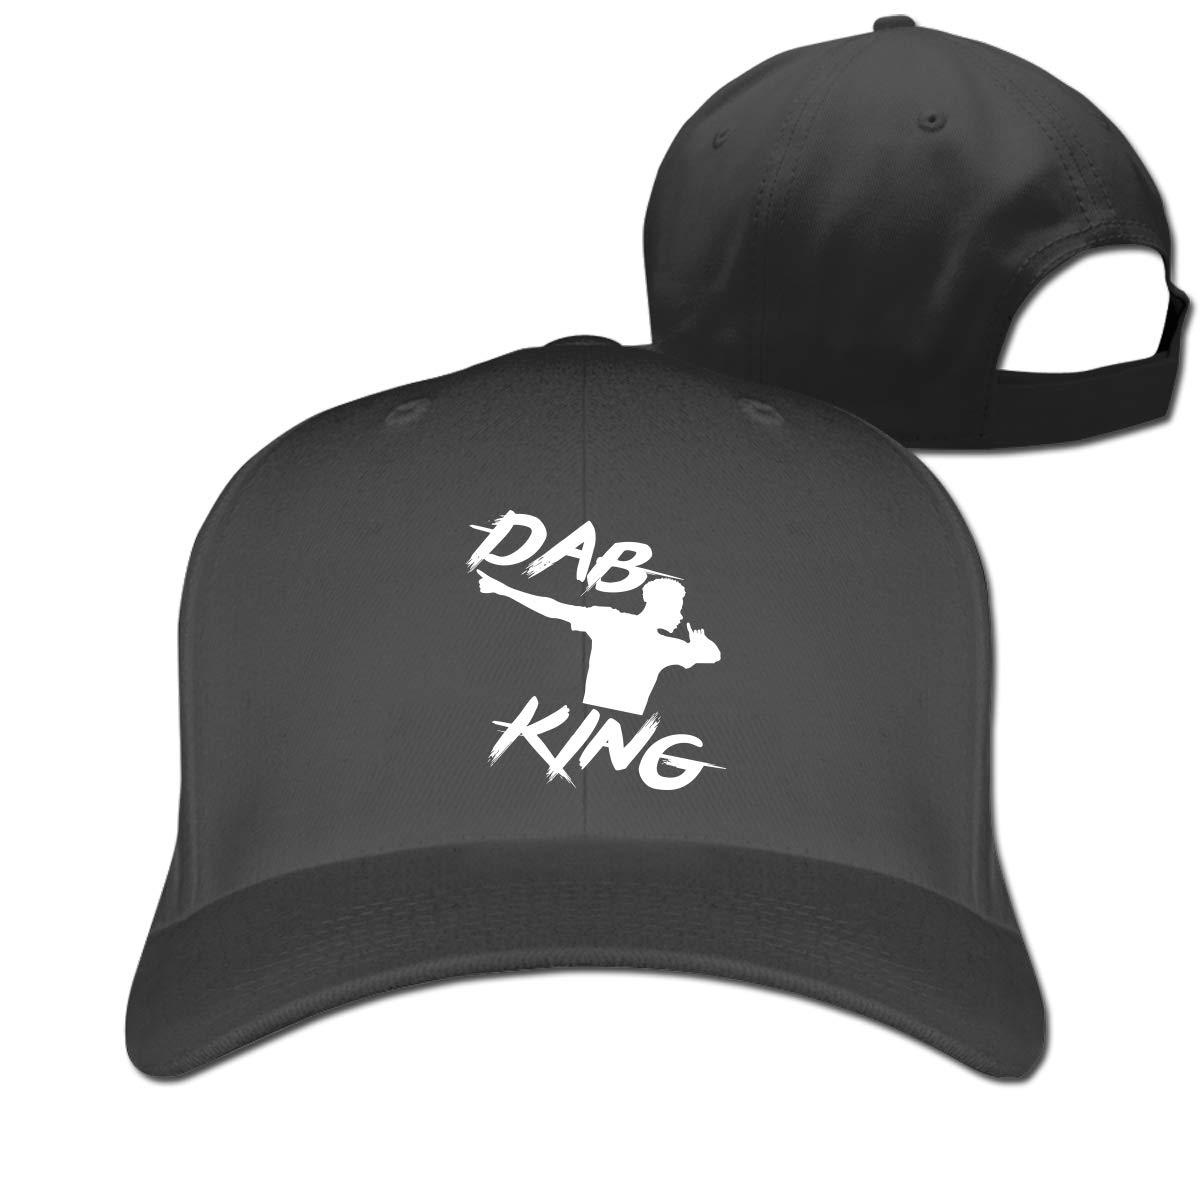 Paul Pogba DAB Classic Adjustable Cotton Baseball Caps Trucker Driver Hat Outdoor Cap Fitted Hats Dad Hat Black